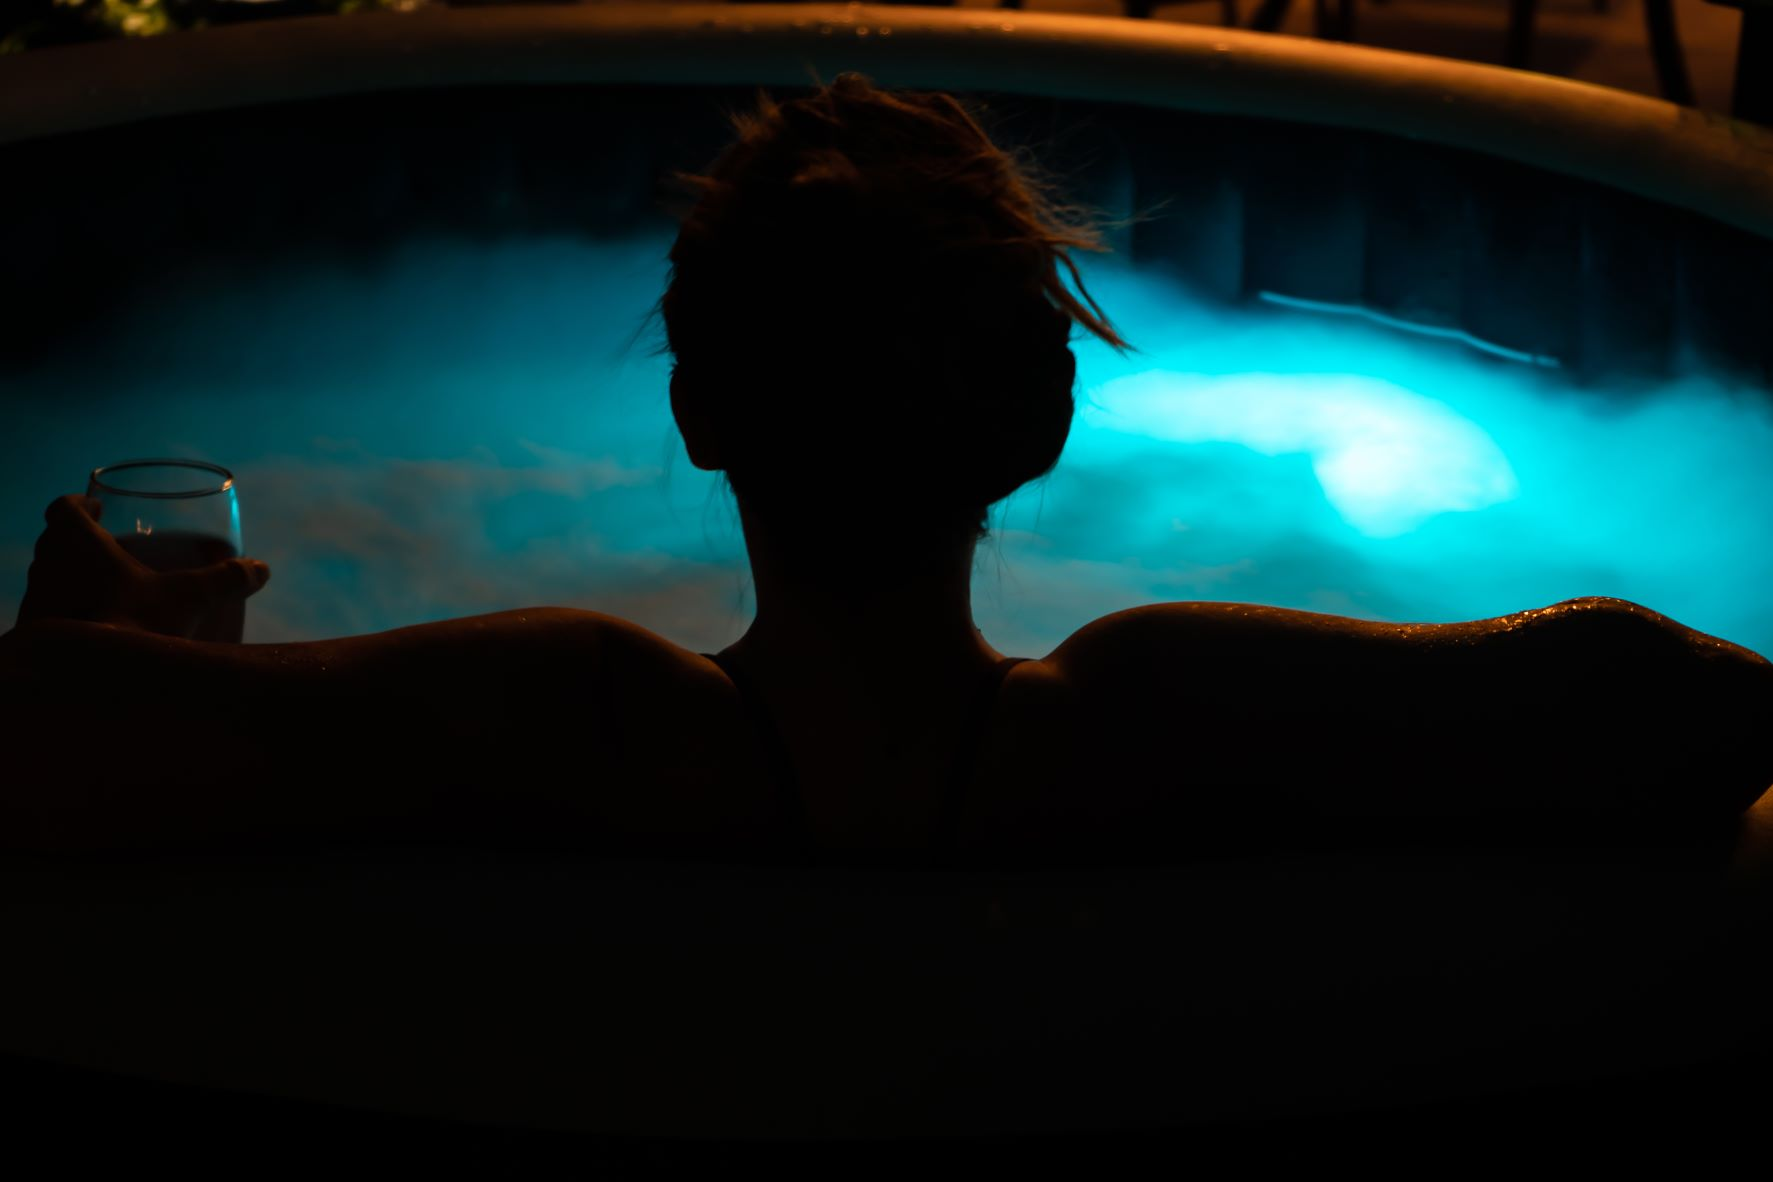 women relaxing in hot tub at night